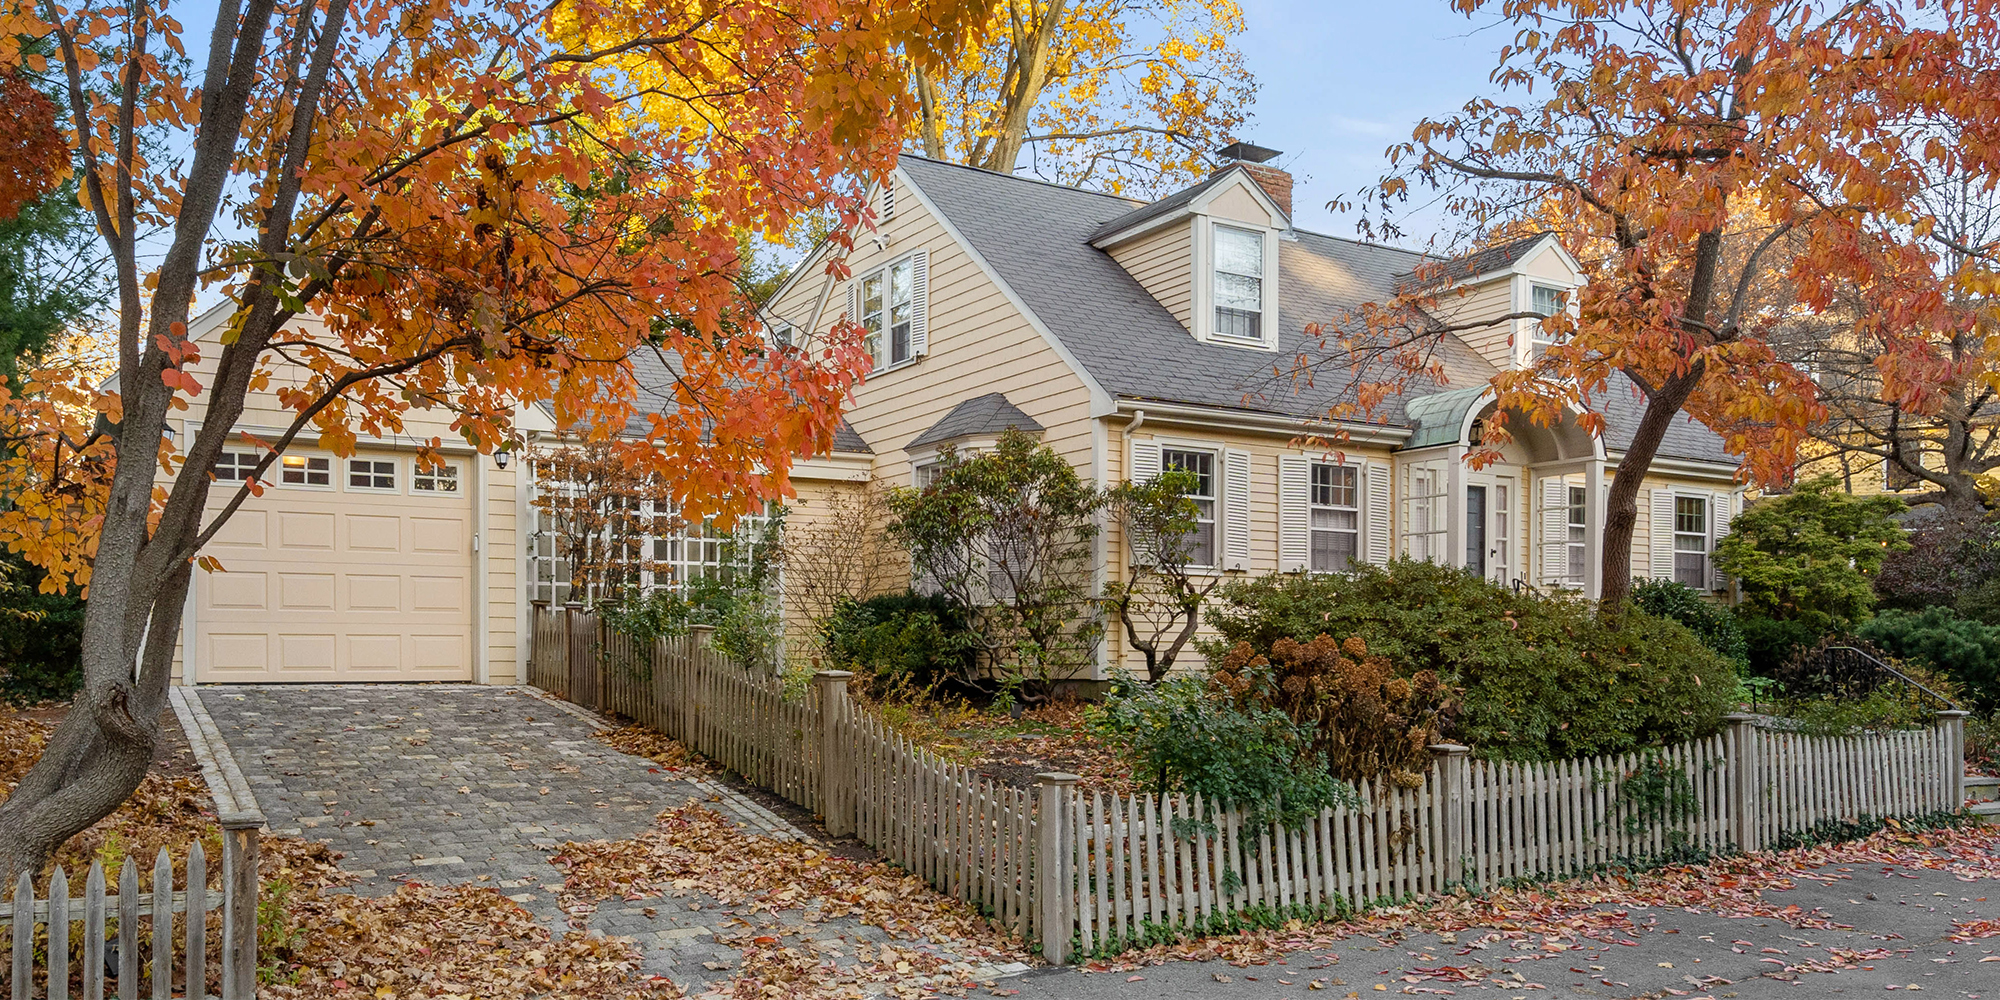 Just Sold in Brookline: Check Out this Storybook Single Family Home Designed by Renowned Cape Architect Royal Barry Wills